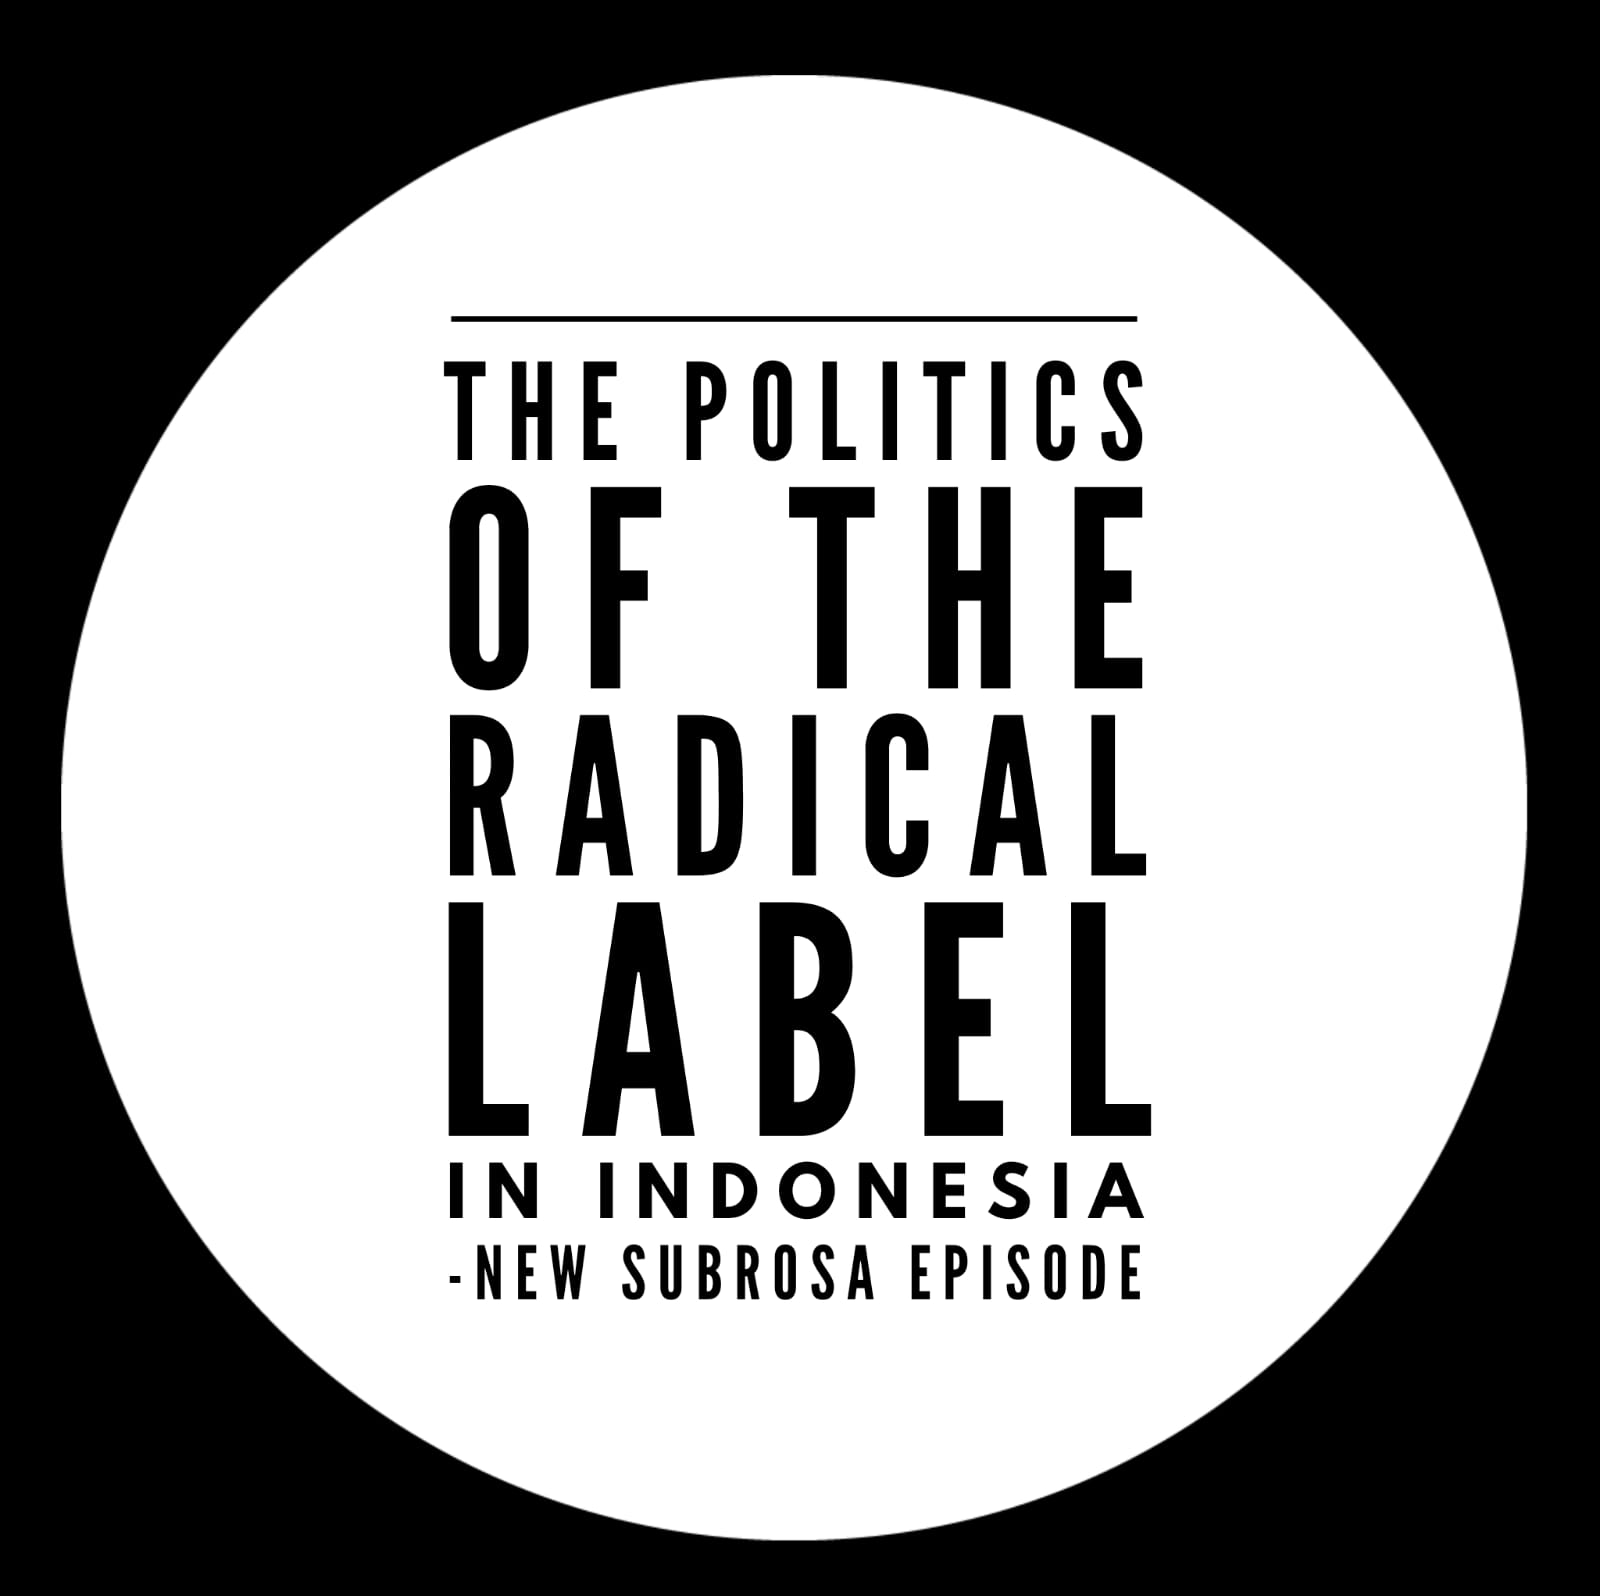 Politics of the label radical